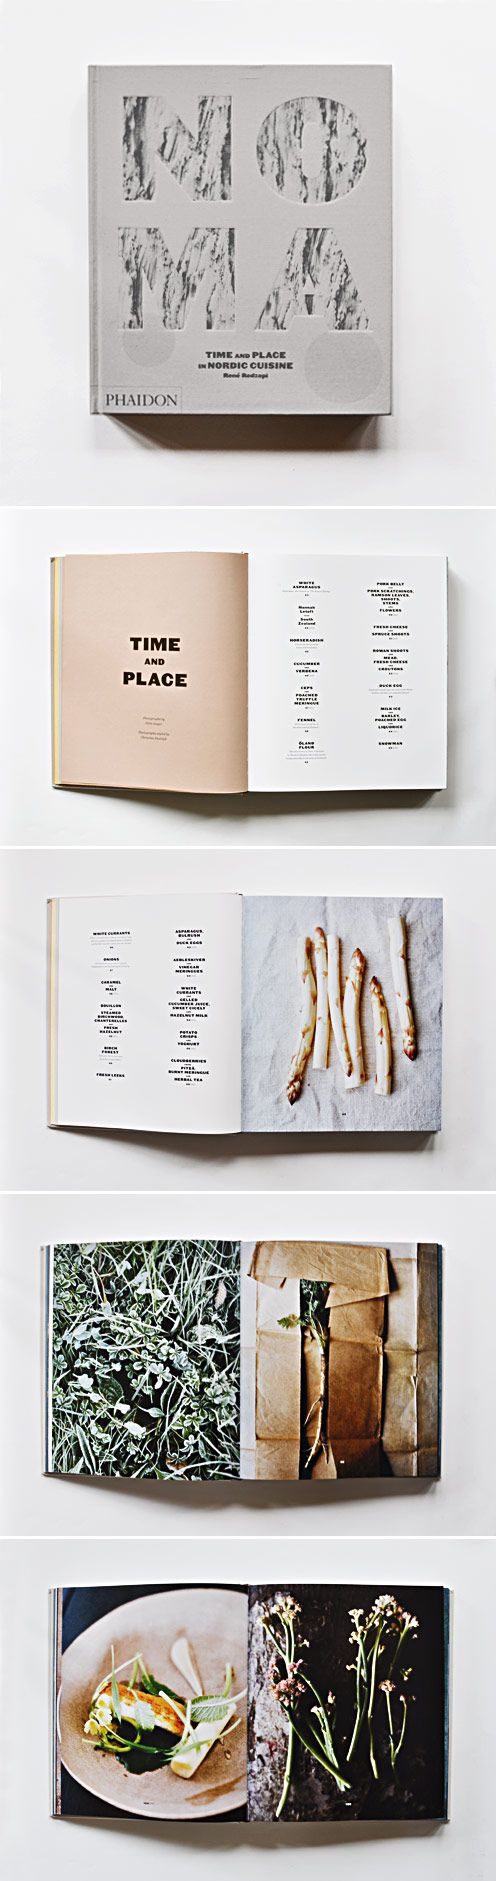 NOMA cookbook - if he hasnt been, he owns the book